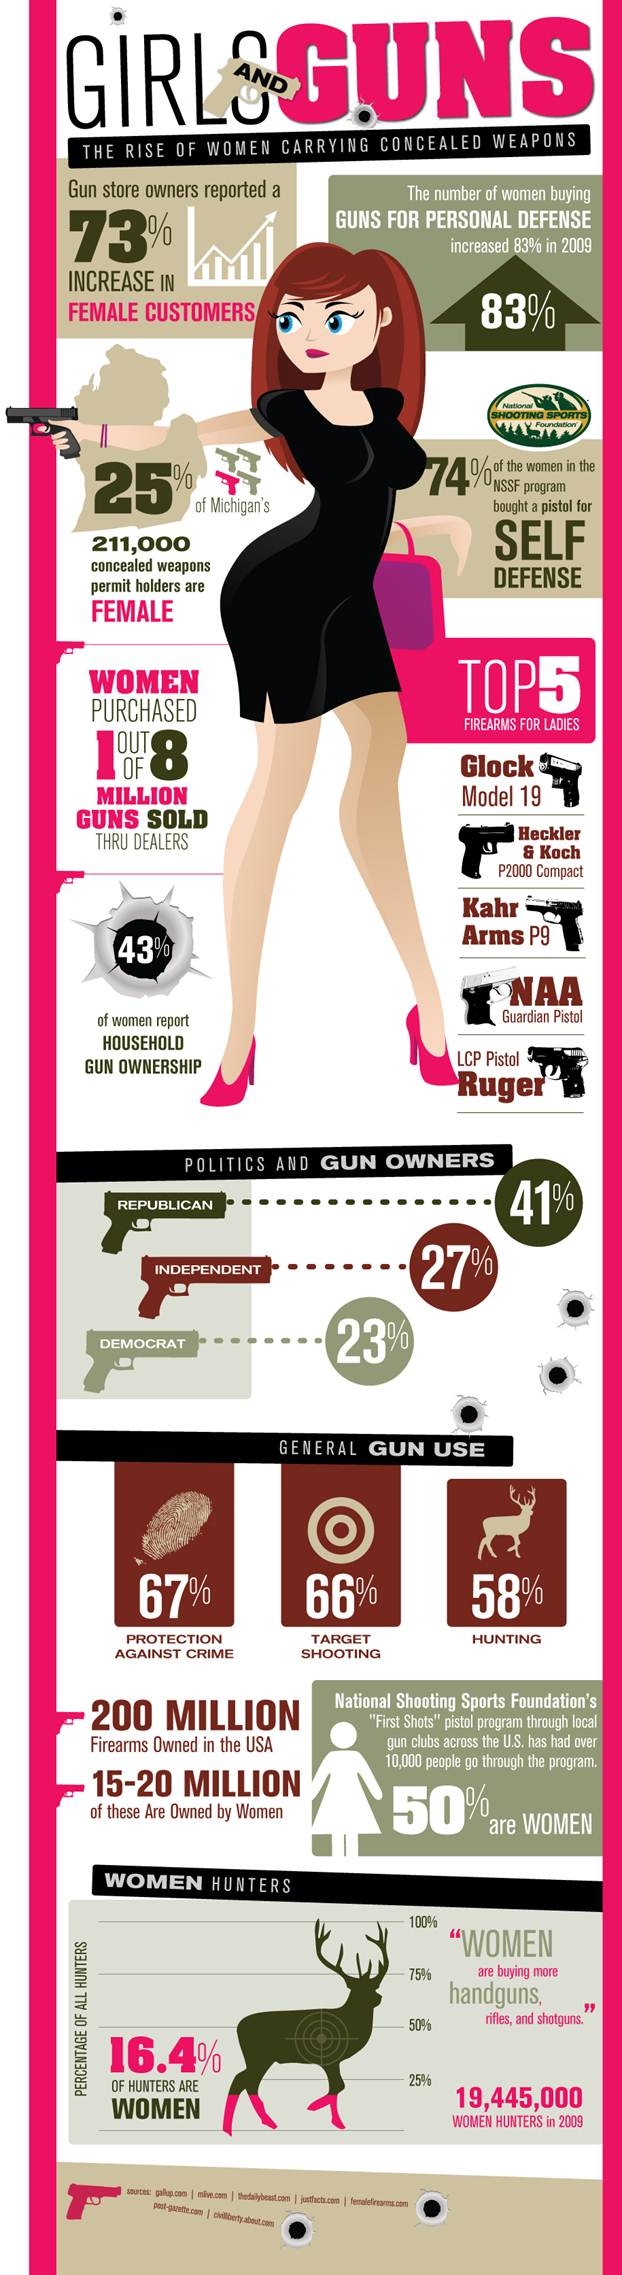 Girls and Guns - The Rise Of Women Carrying Concealed Weapons